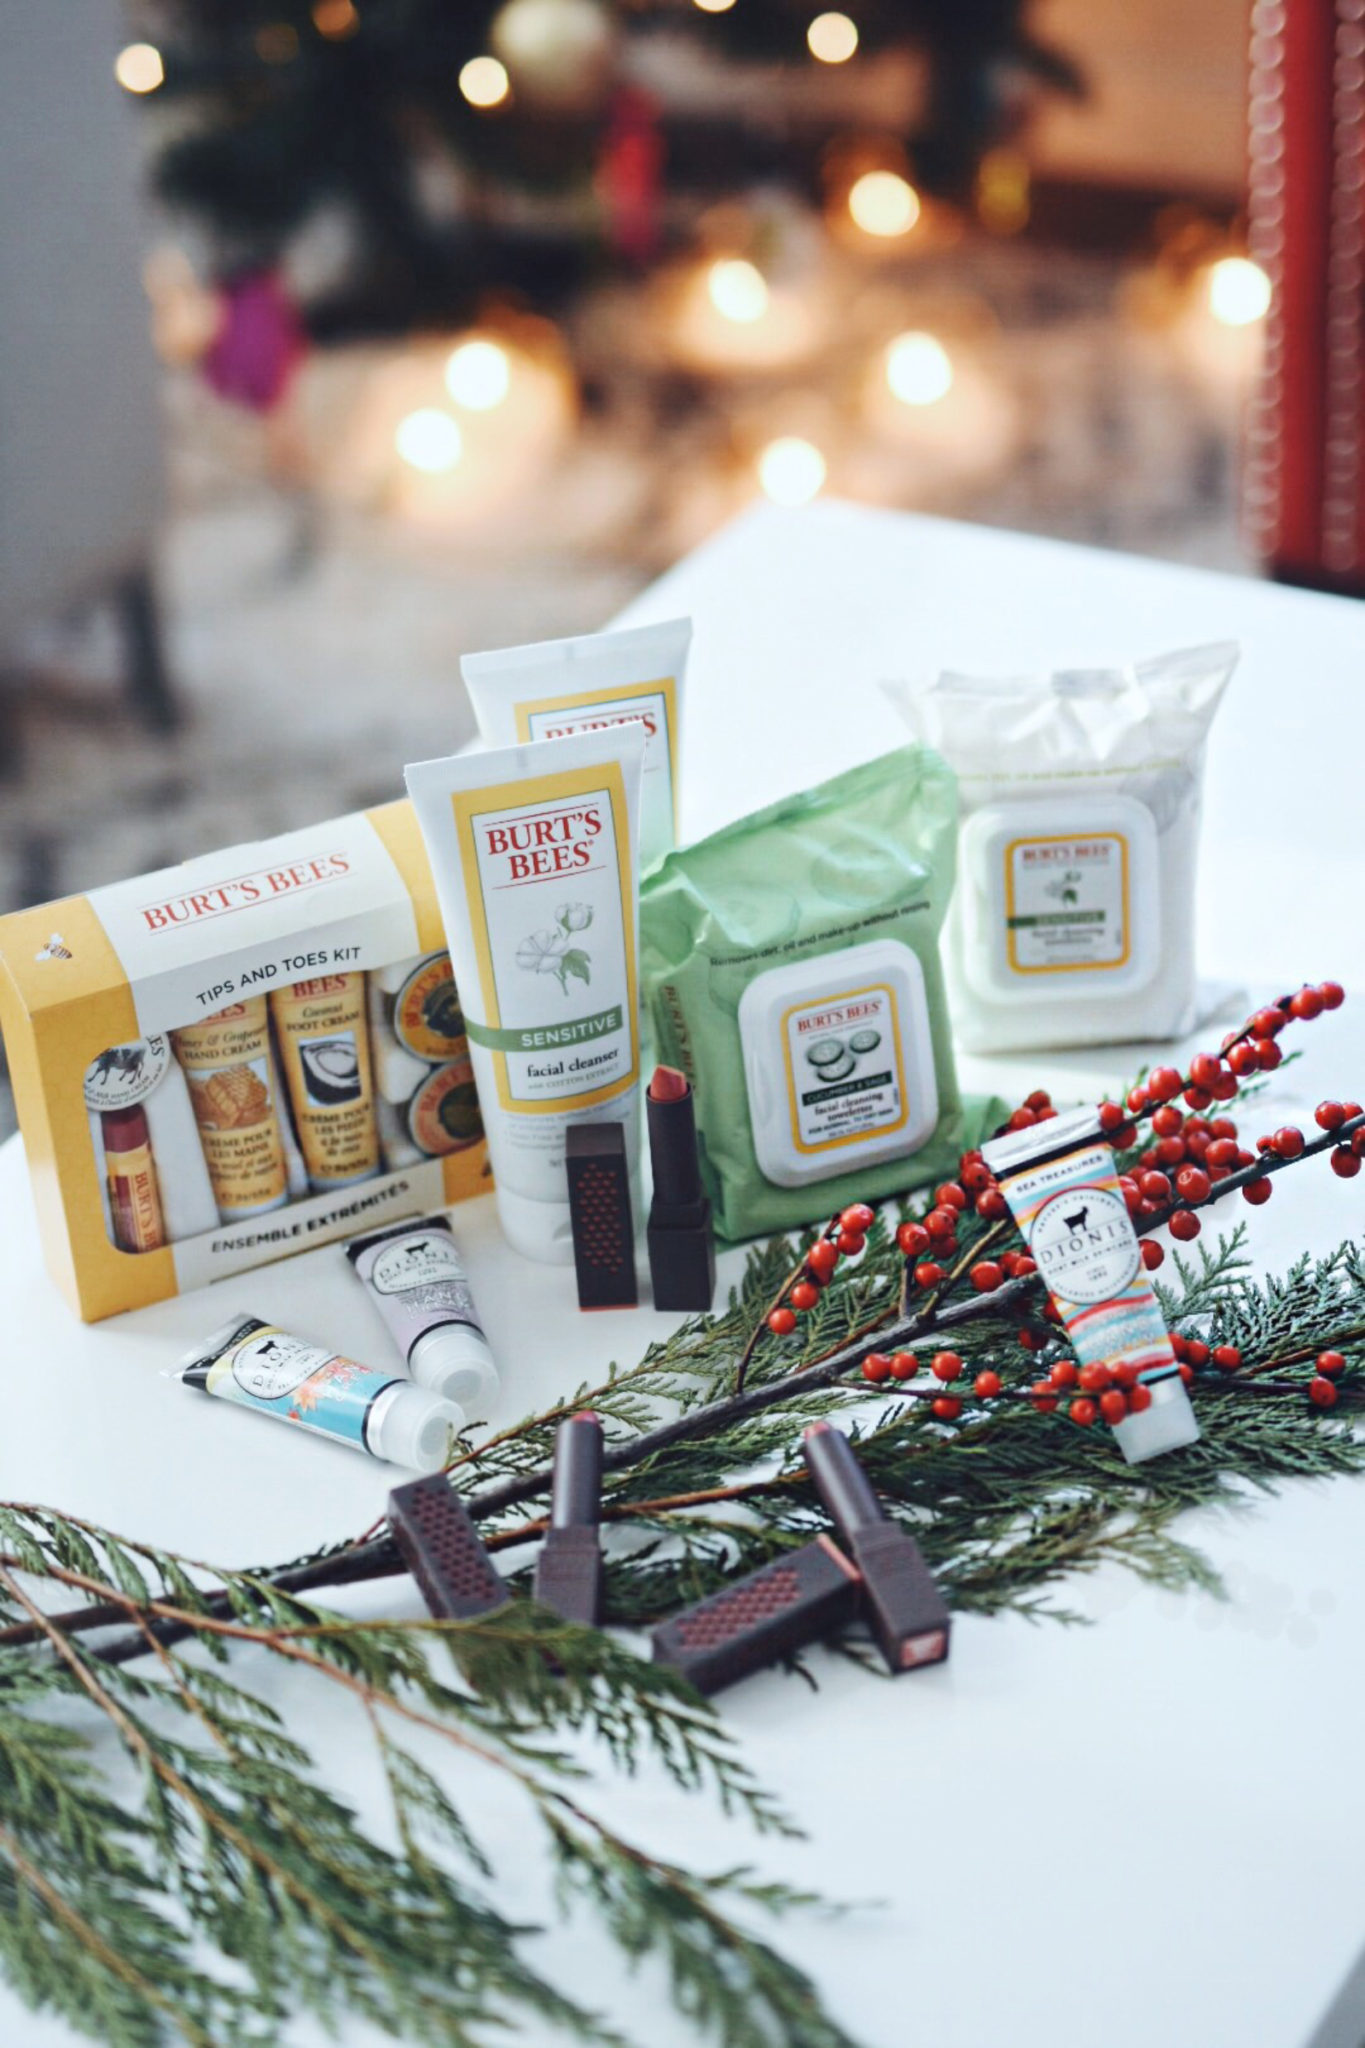 HOLIDAY GIFTS FOR MOM VIA CRACKER BARREL OLD COUNTRY STORE